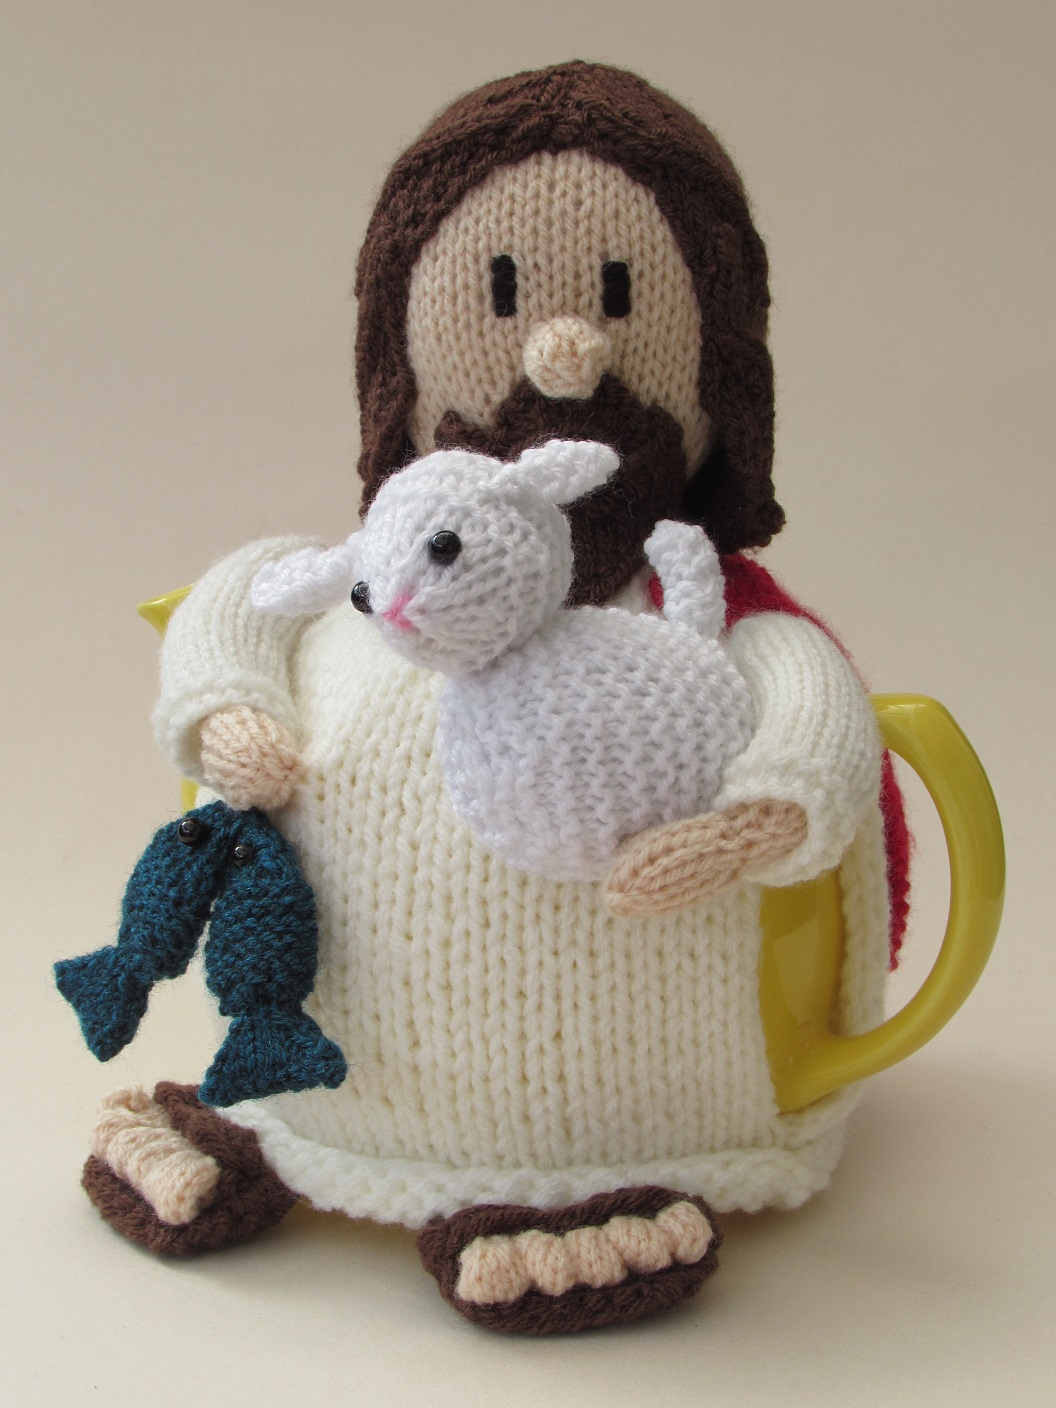 Jesus tea cosy knitting pattern